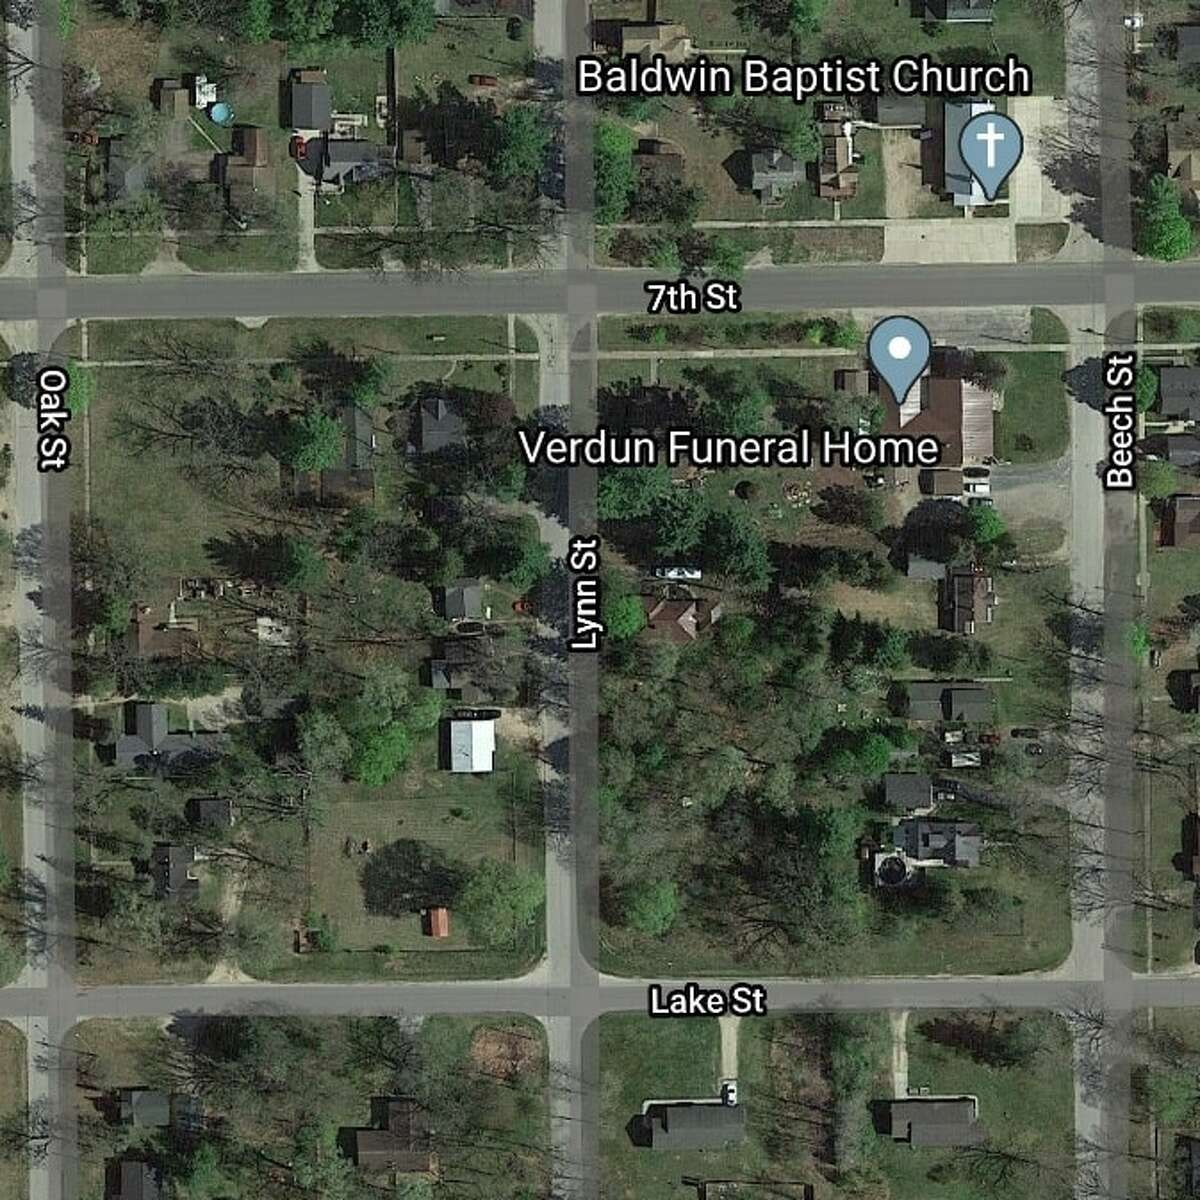 Four men are facing multiple charges for assault and lying to police after firing shots during an argument in Baldwin.